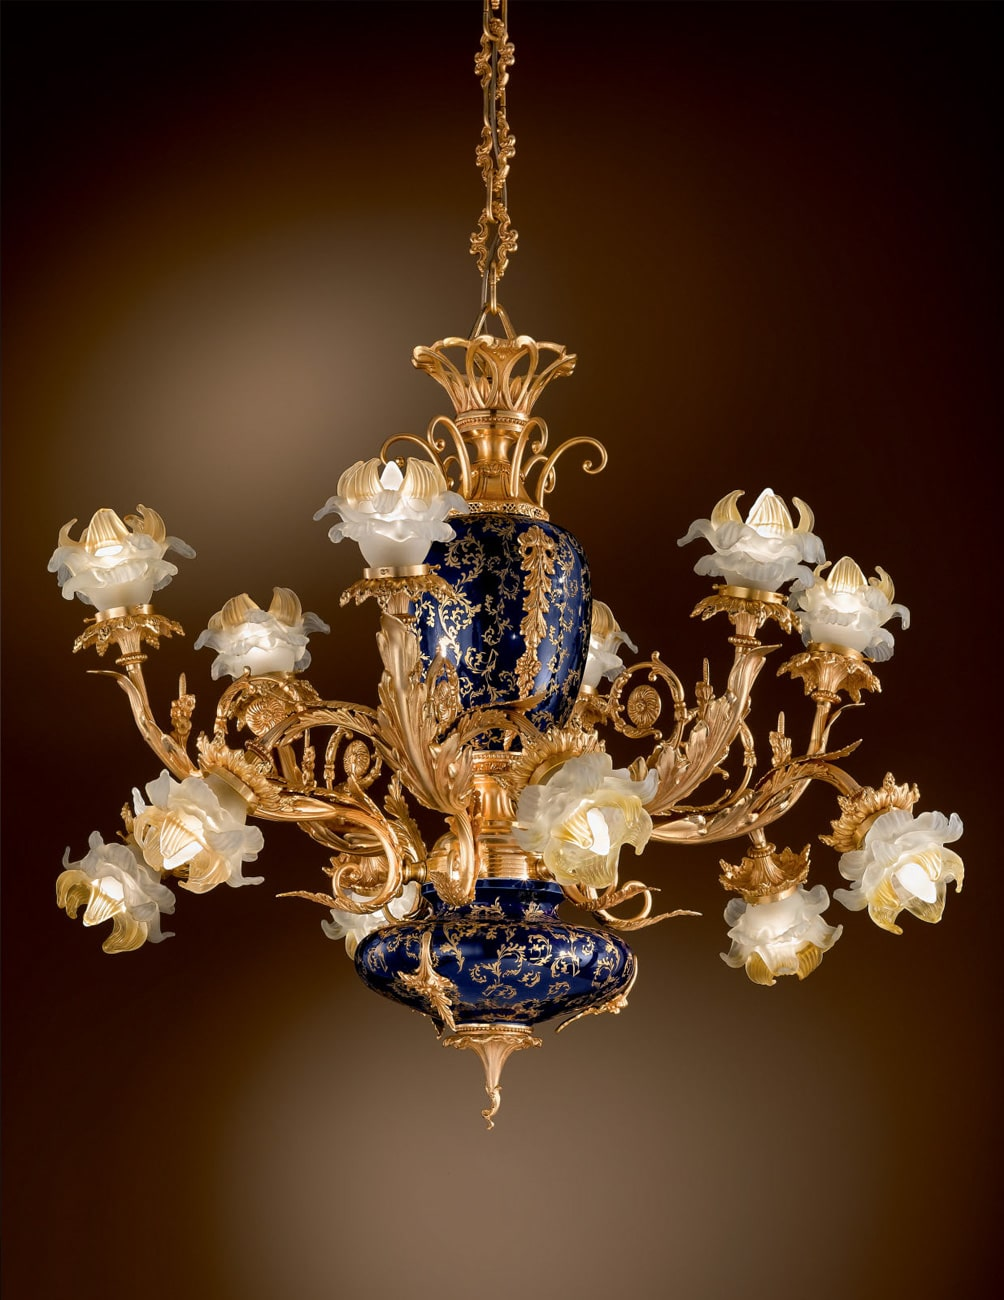 decorative lighting chandeliers 53